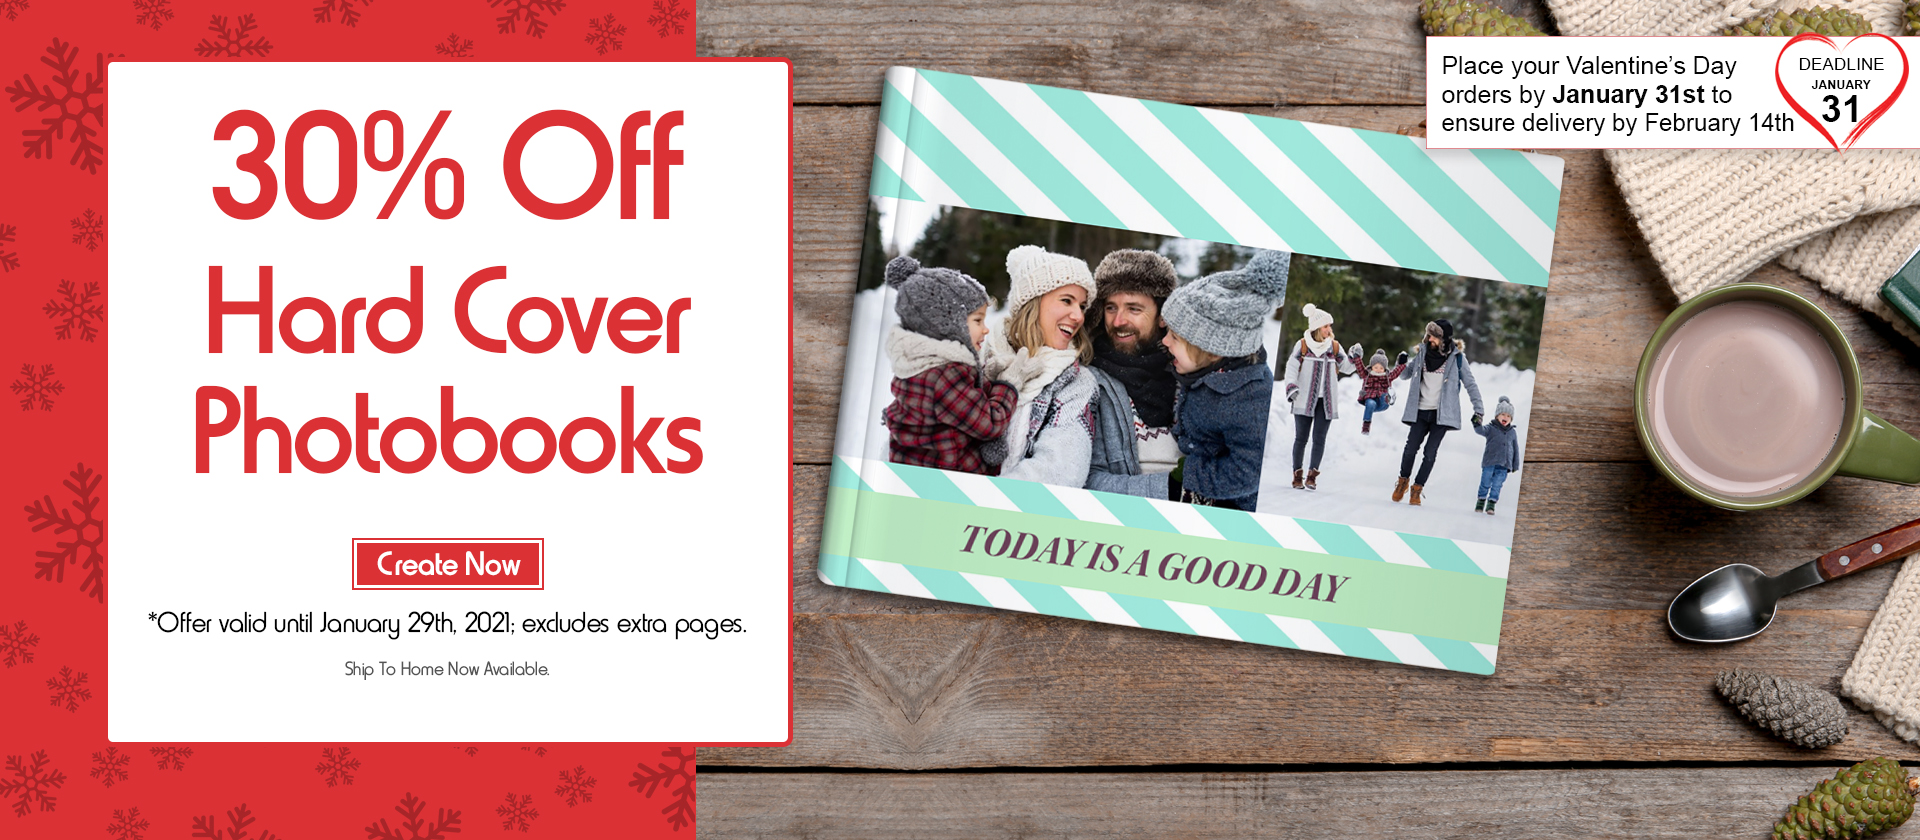 30% Off Hard Cover Photobooks. Create yours now.